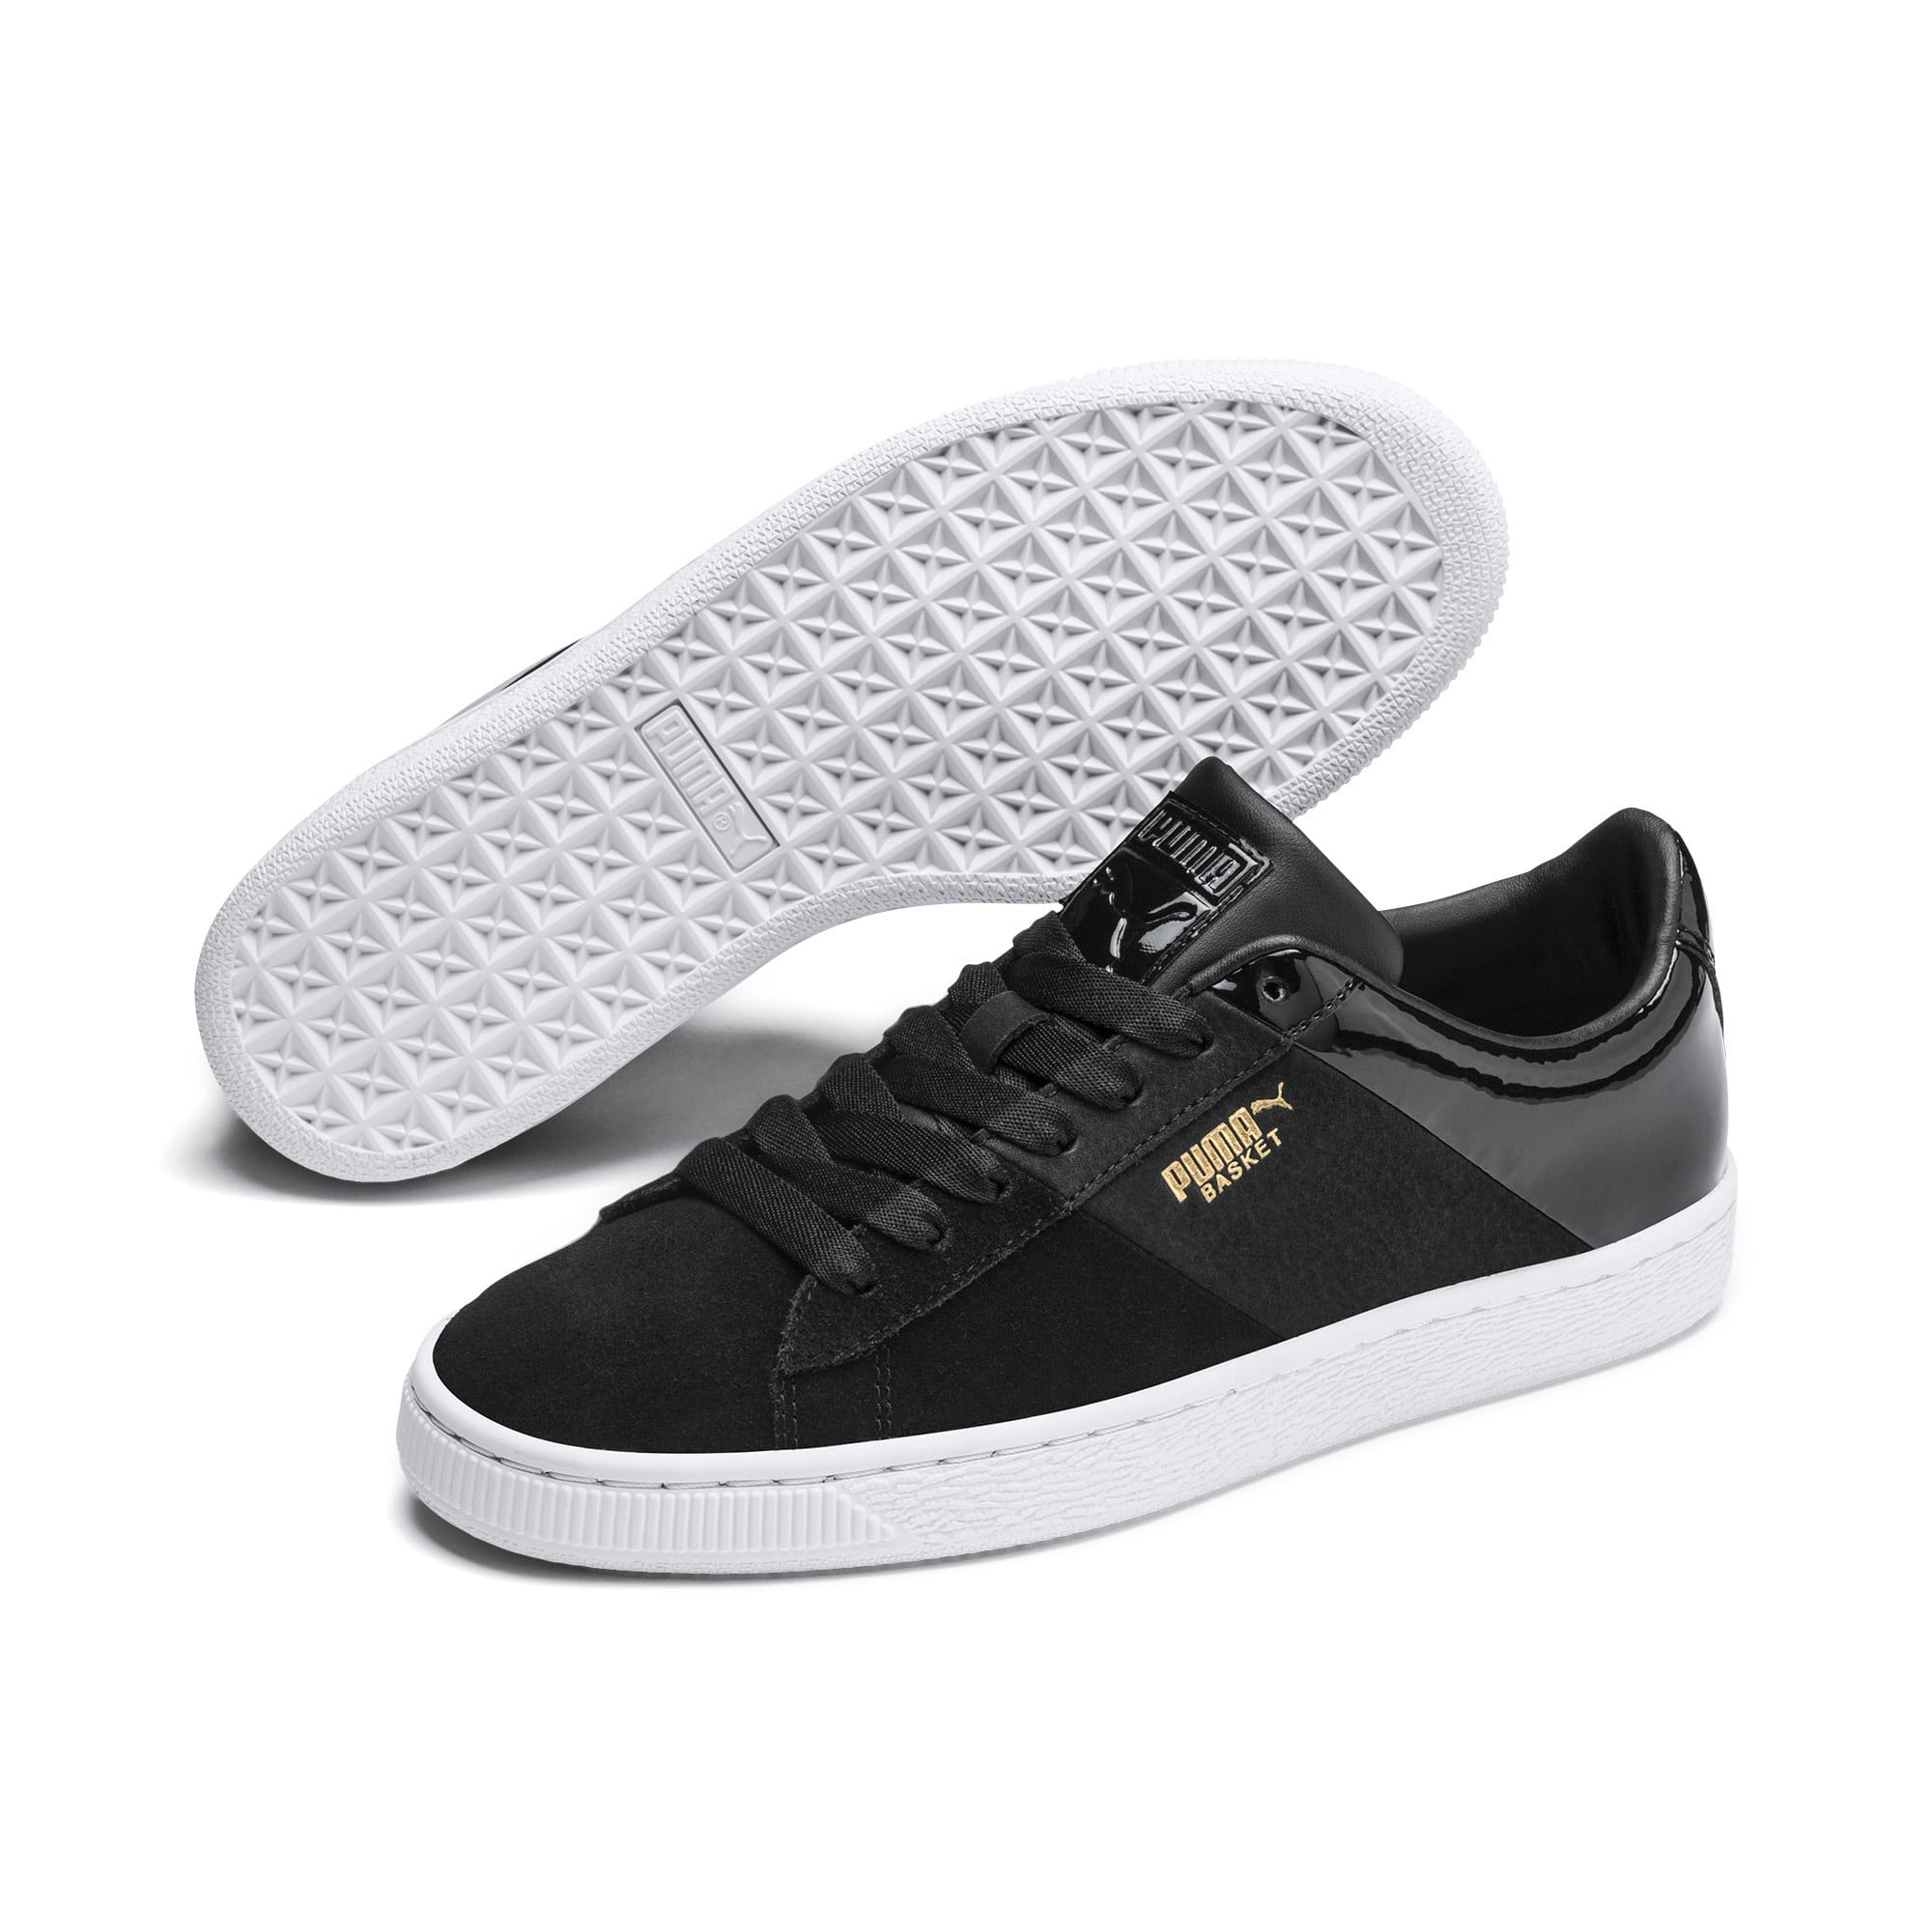 Thumbnail 3 of Basket Remix Women's Trainers, Puma Black-Puma Team Gold, medium